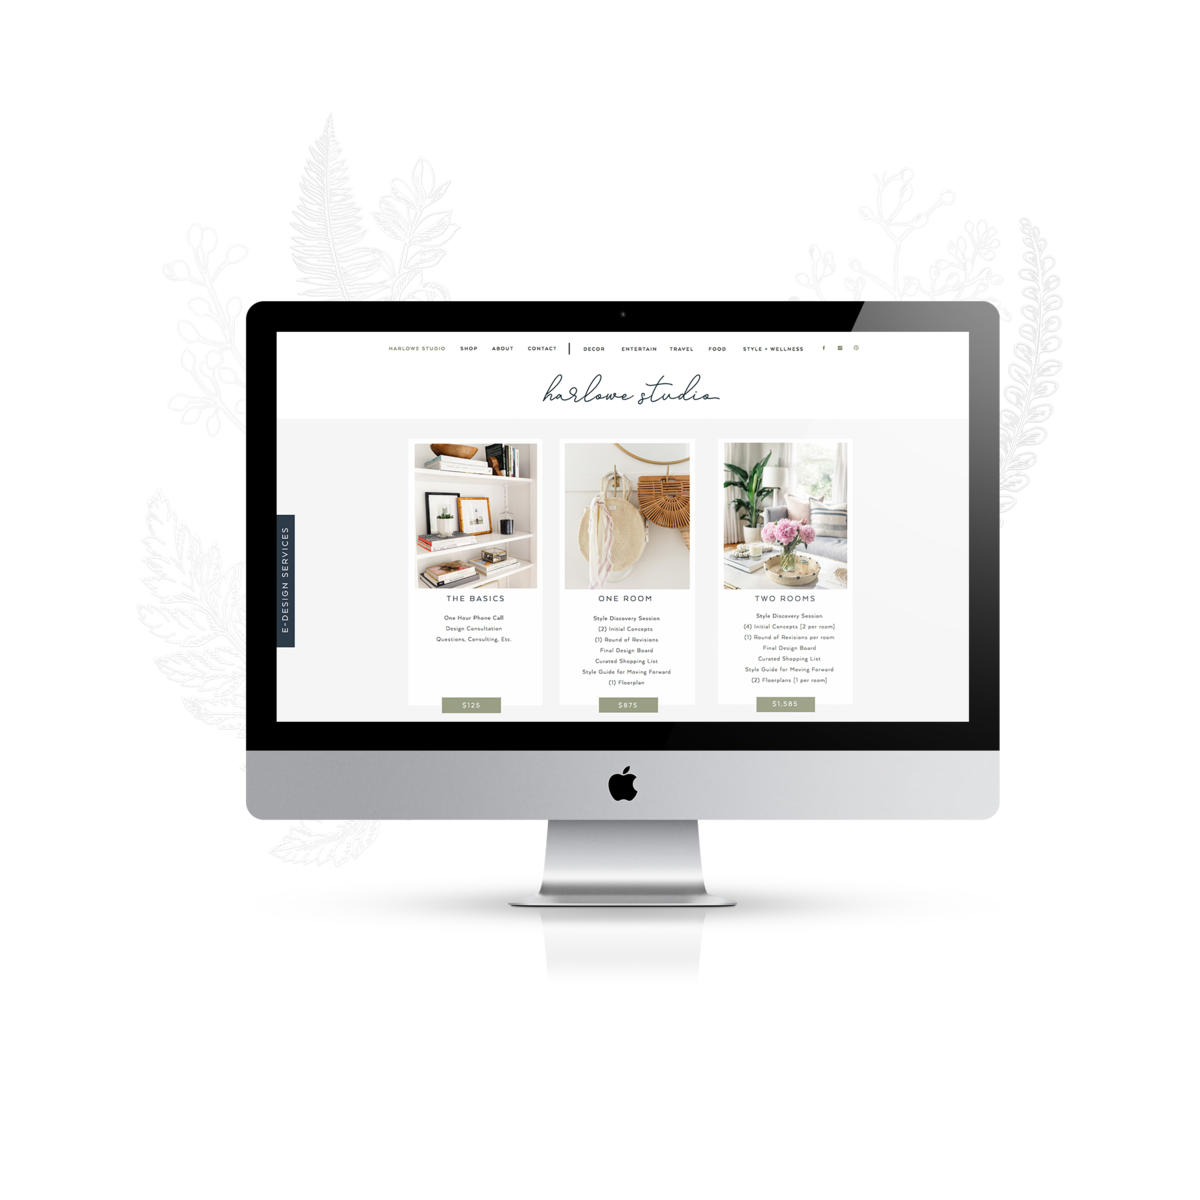 harlowe james interior designer web mockup